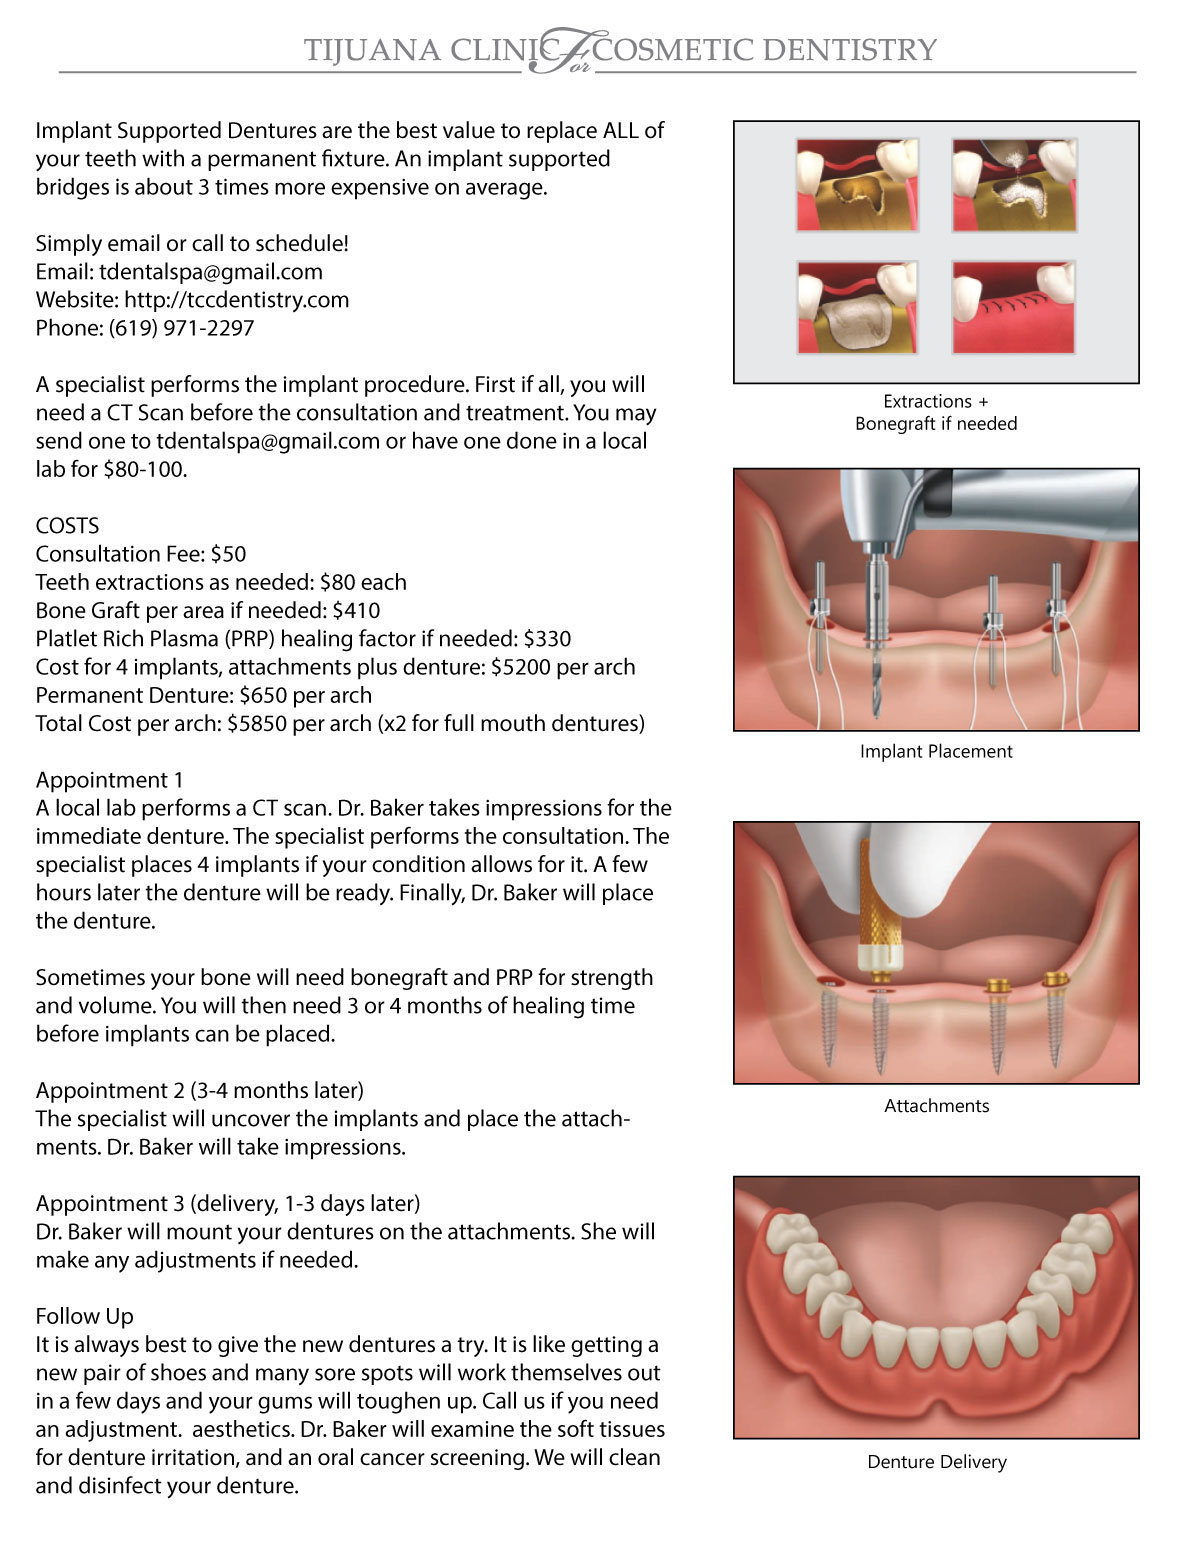 Implant Supported Dentures - Tijuana Clinic for Cosmetic